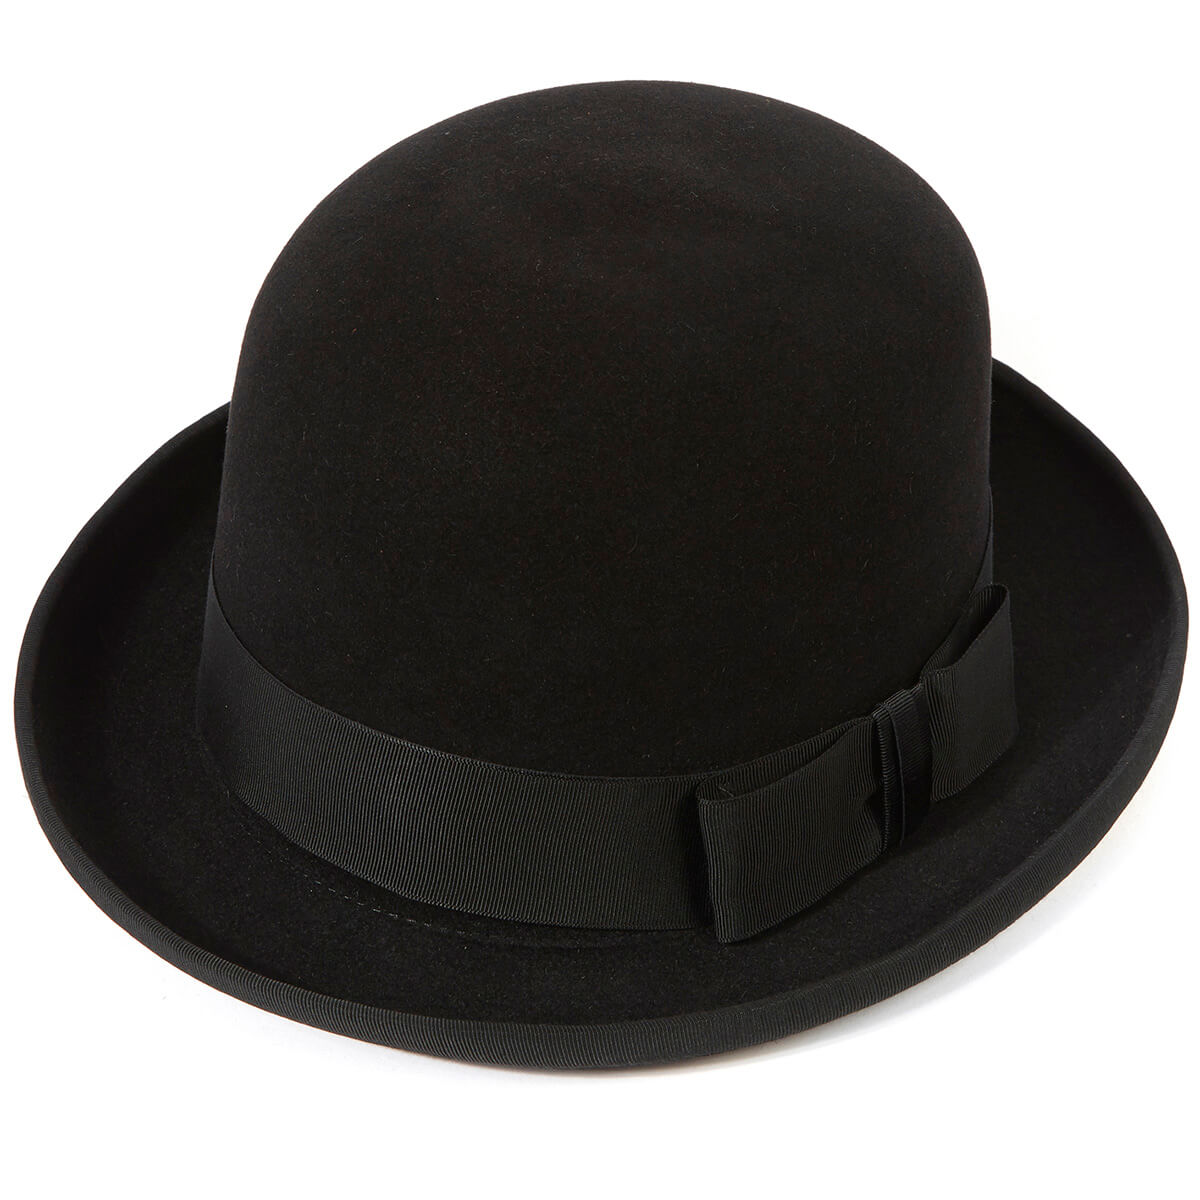 Homburg Hat - Black - 59cm (L)